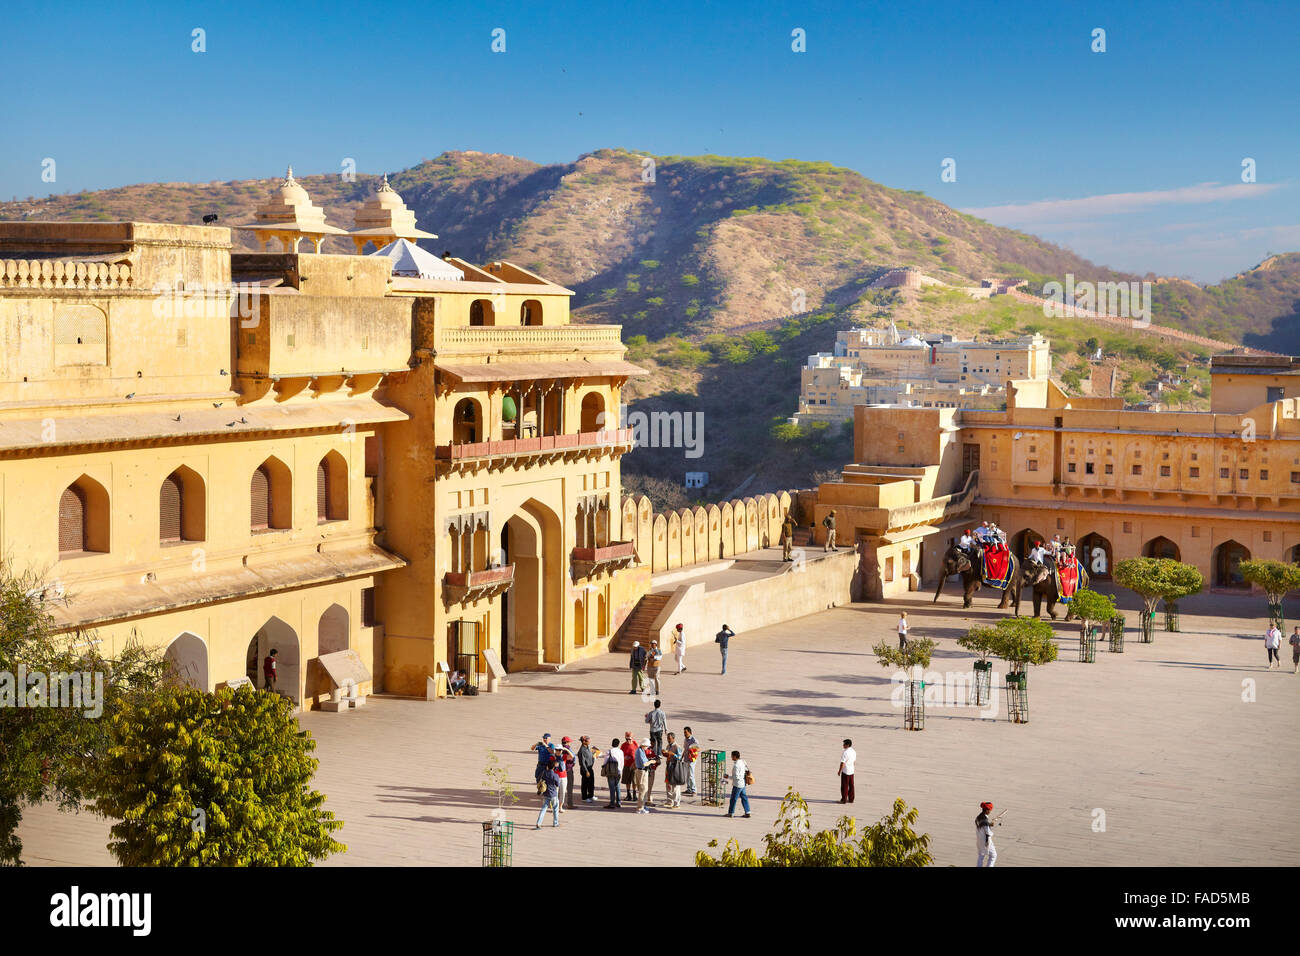 View of Jaleb Chowk courtyard, Amber Fort, Jaipur, India - Stock Image